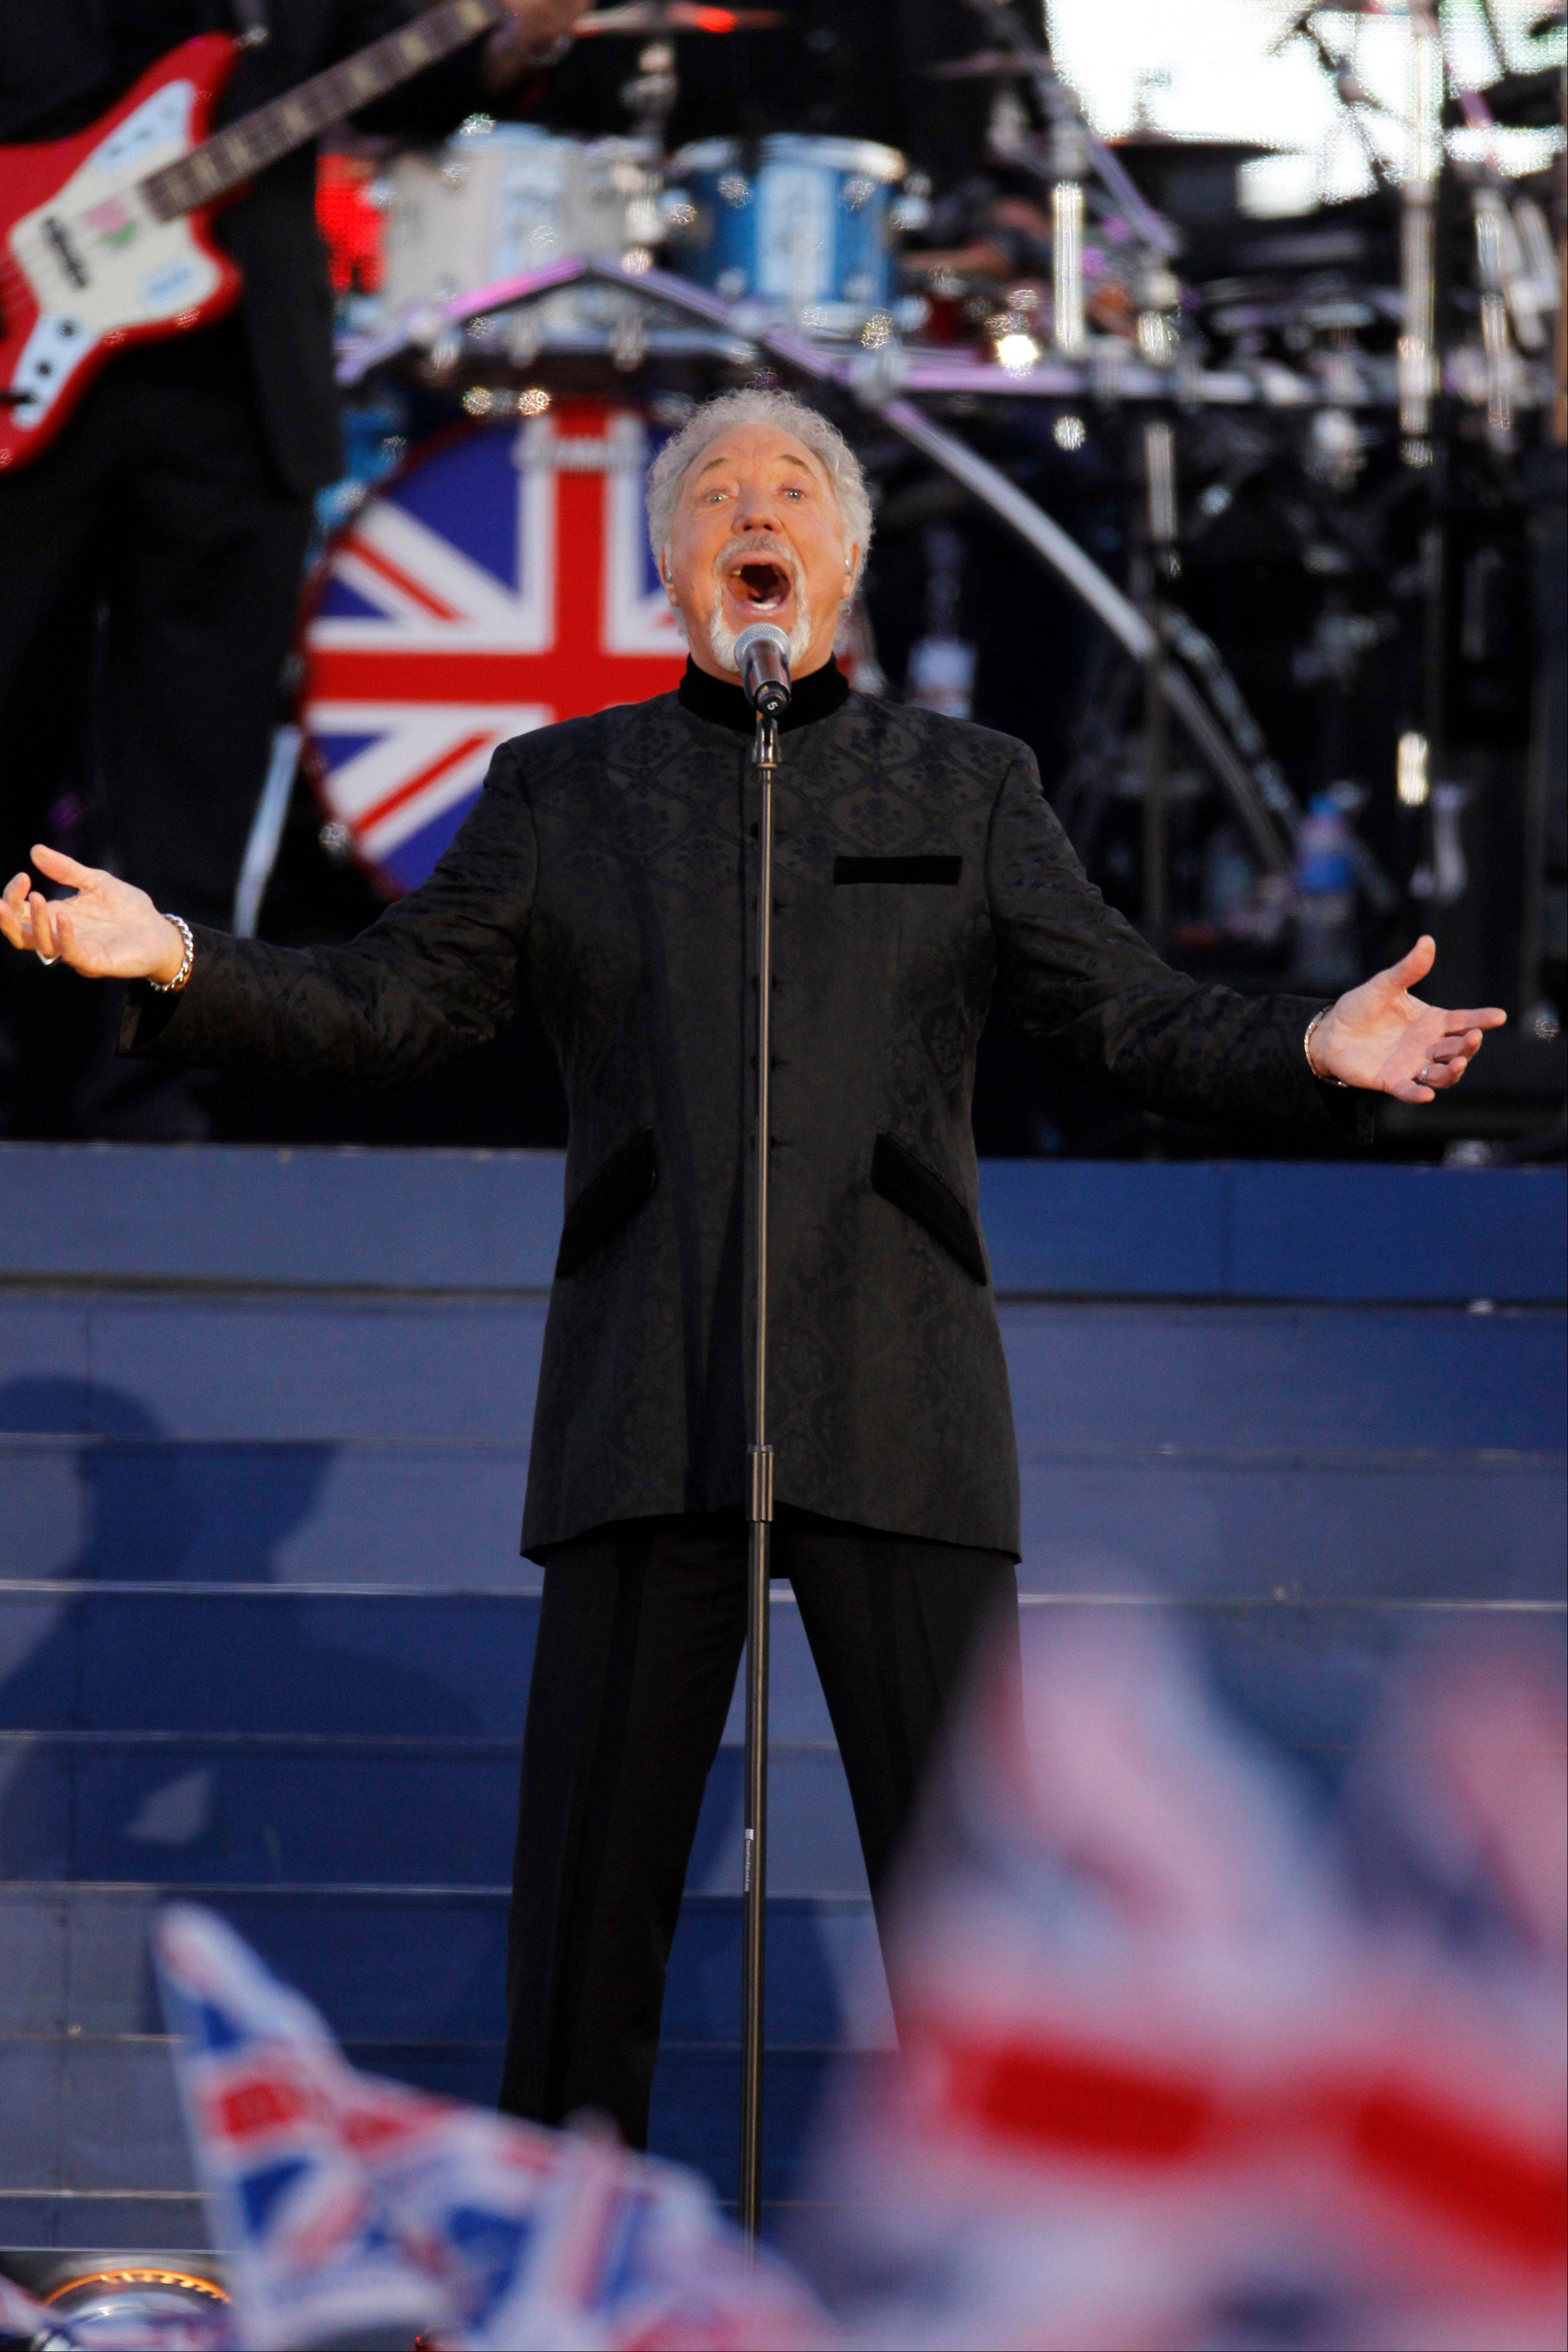 Sir Tom Jones performs at the Queen's Jubilee Concert in front of Buckingham Palace, London, Monday, June 4, 2012. The concert is a part of four days of celebrations to mark the 60-year reign of Britain's Queen Elizabeth II.